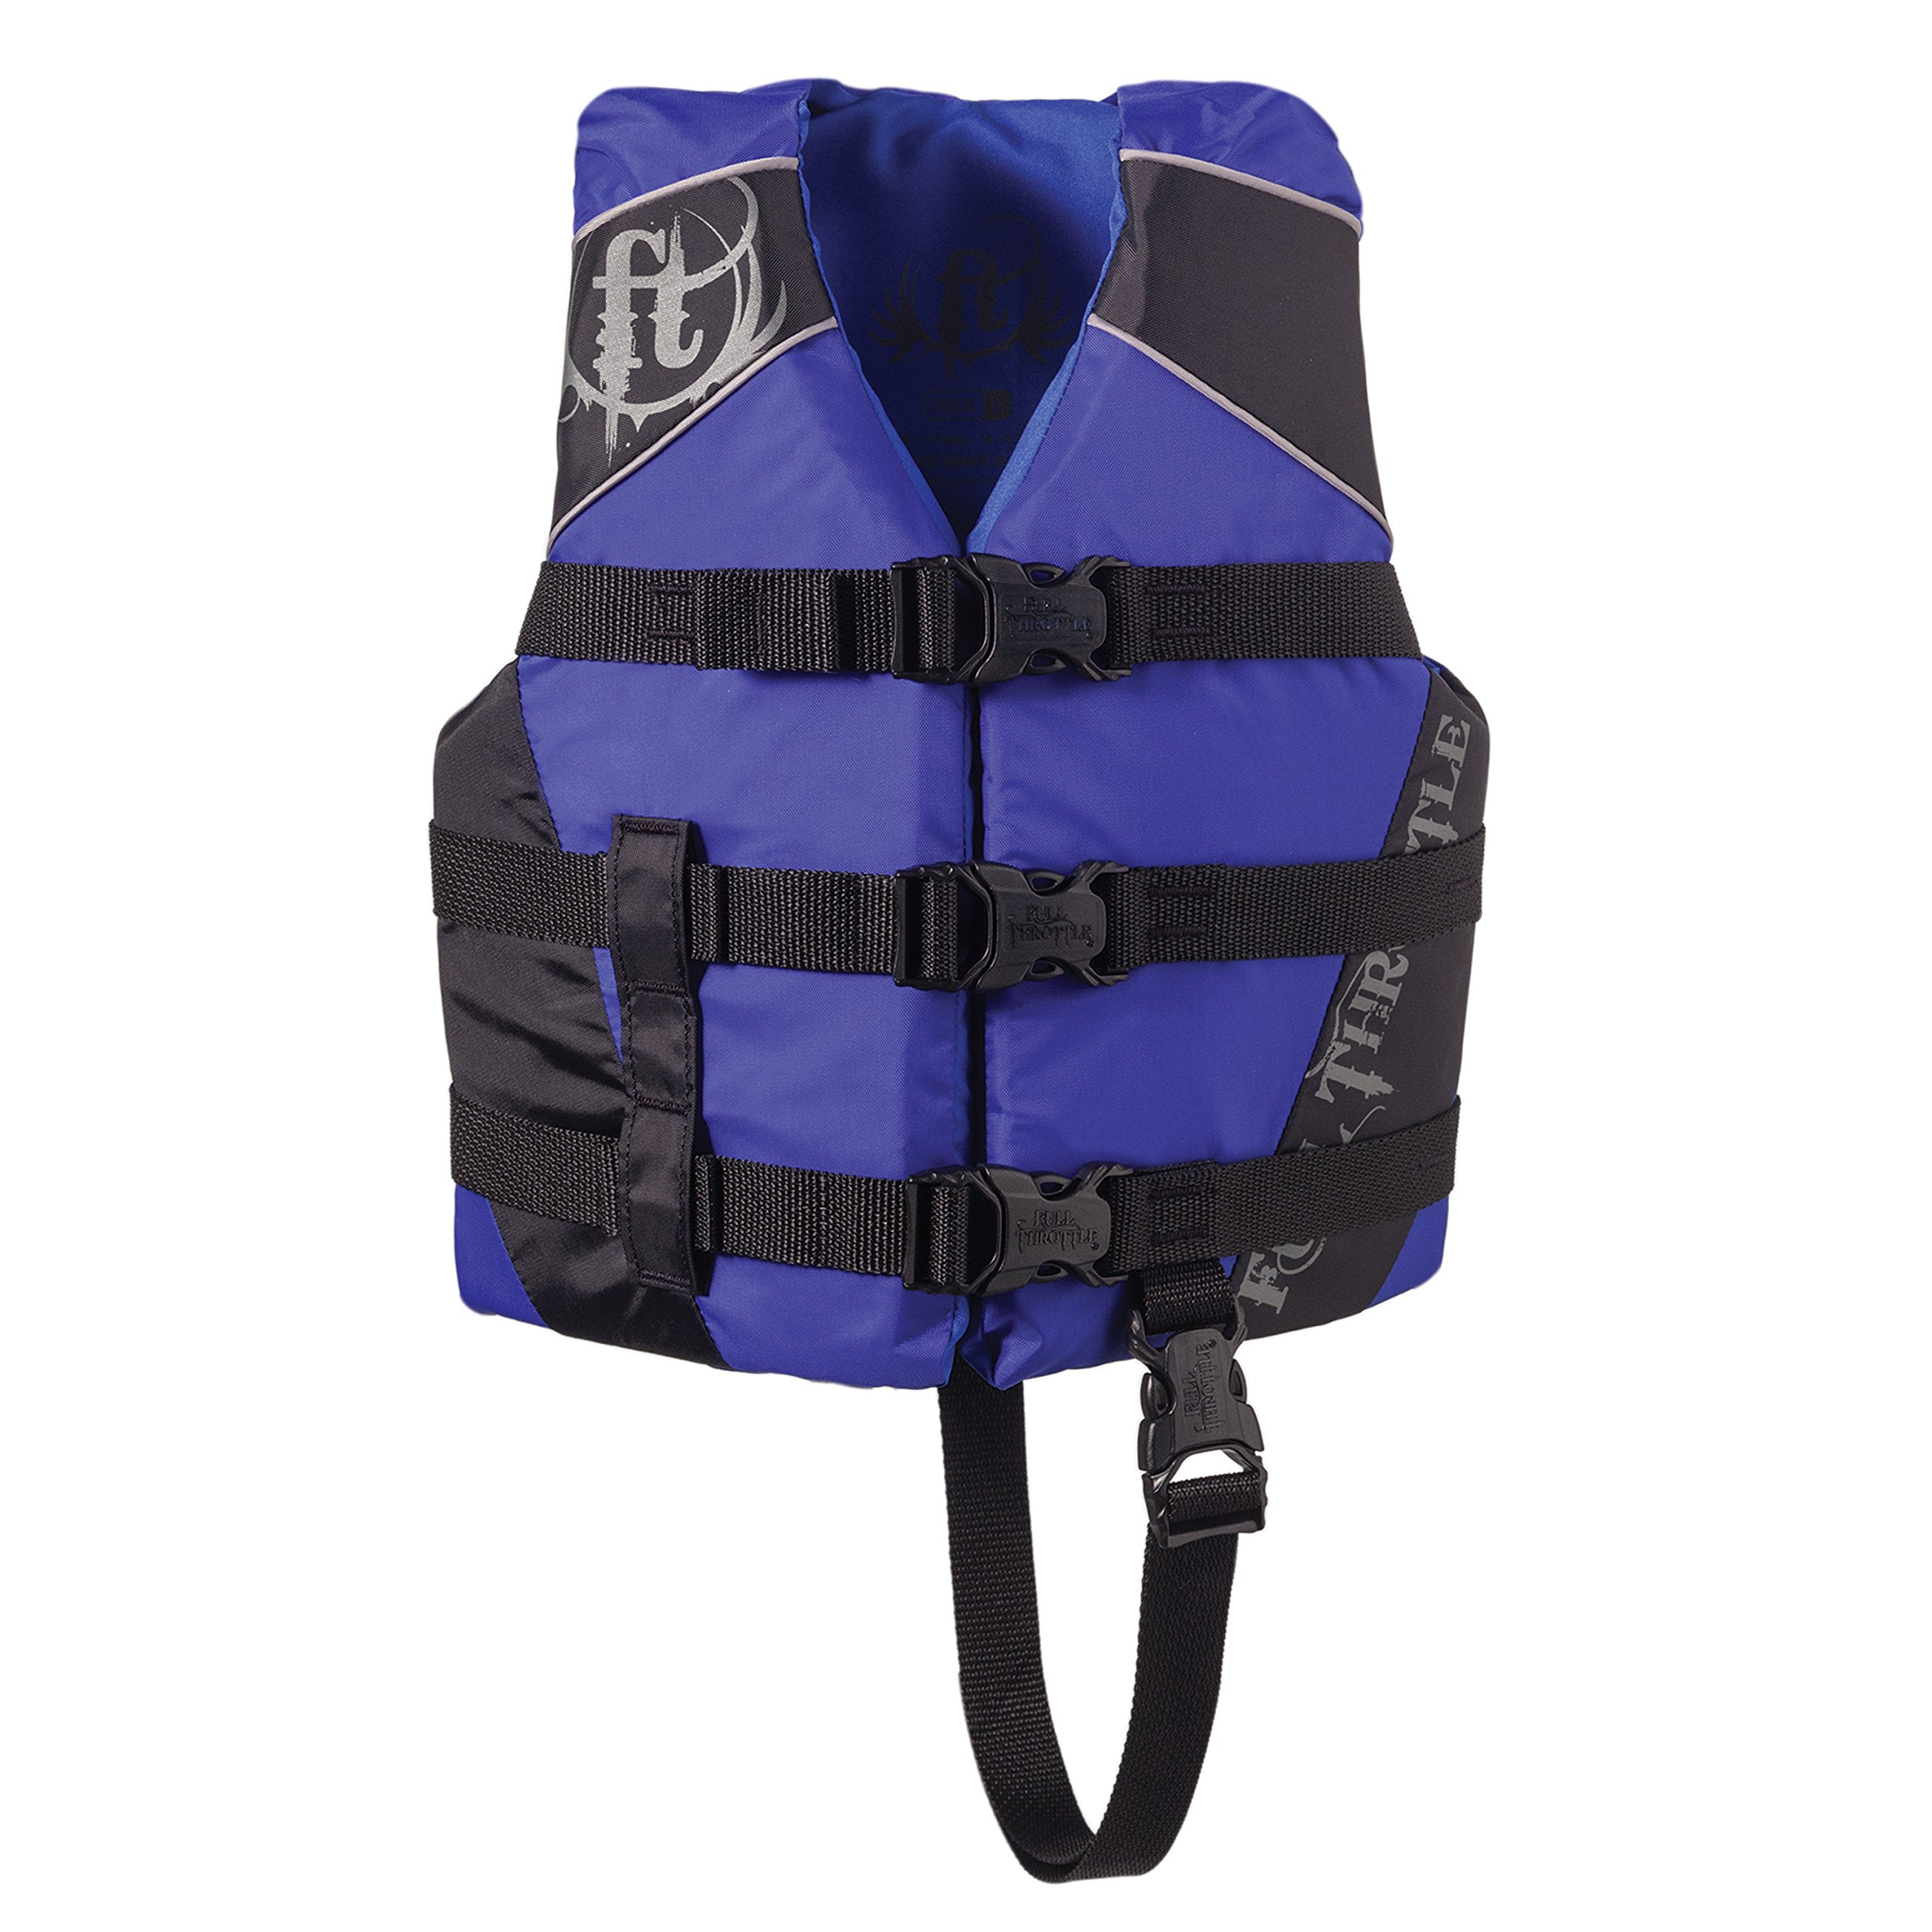 Full Throttle Child Watersports Vest - Blue/Black